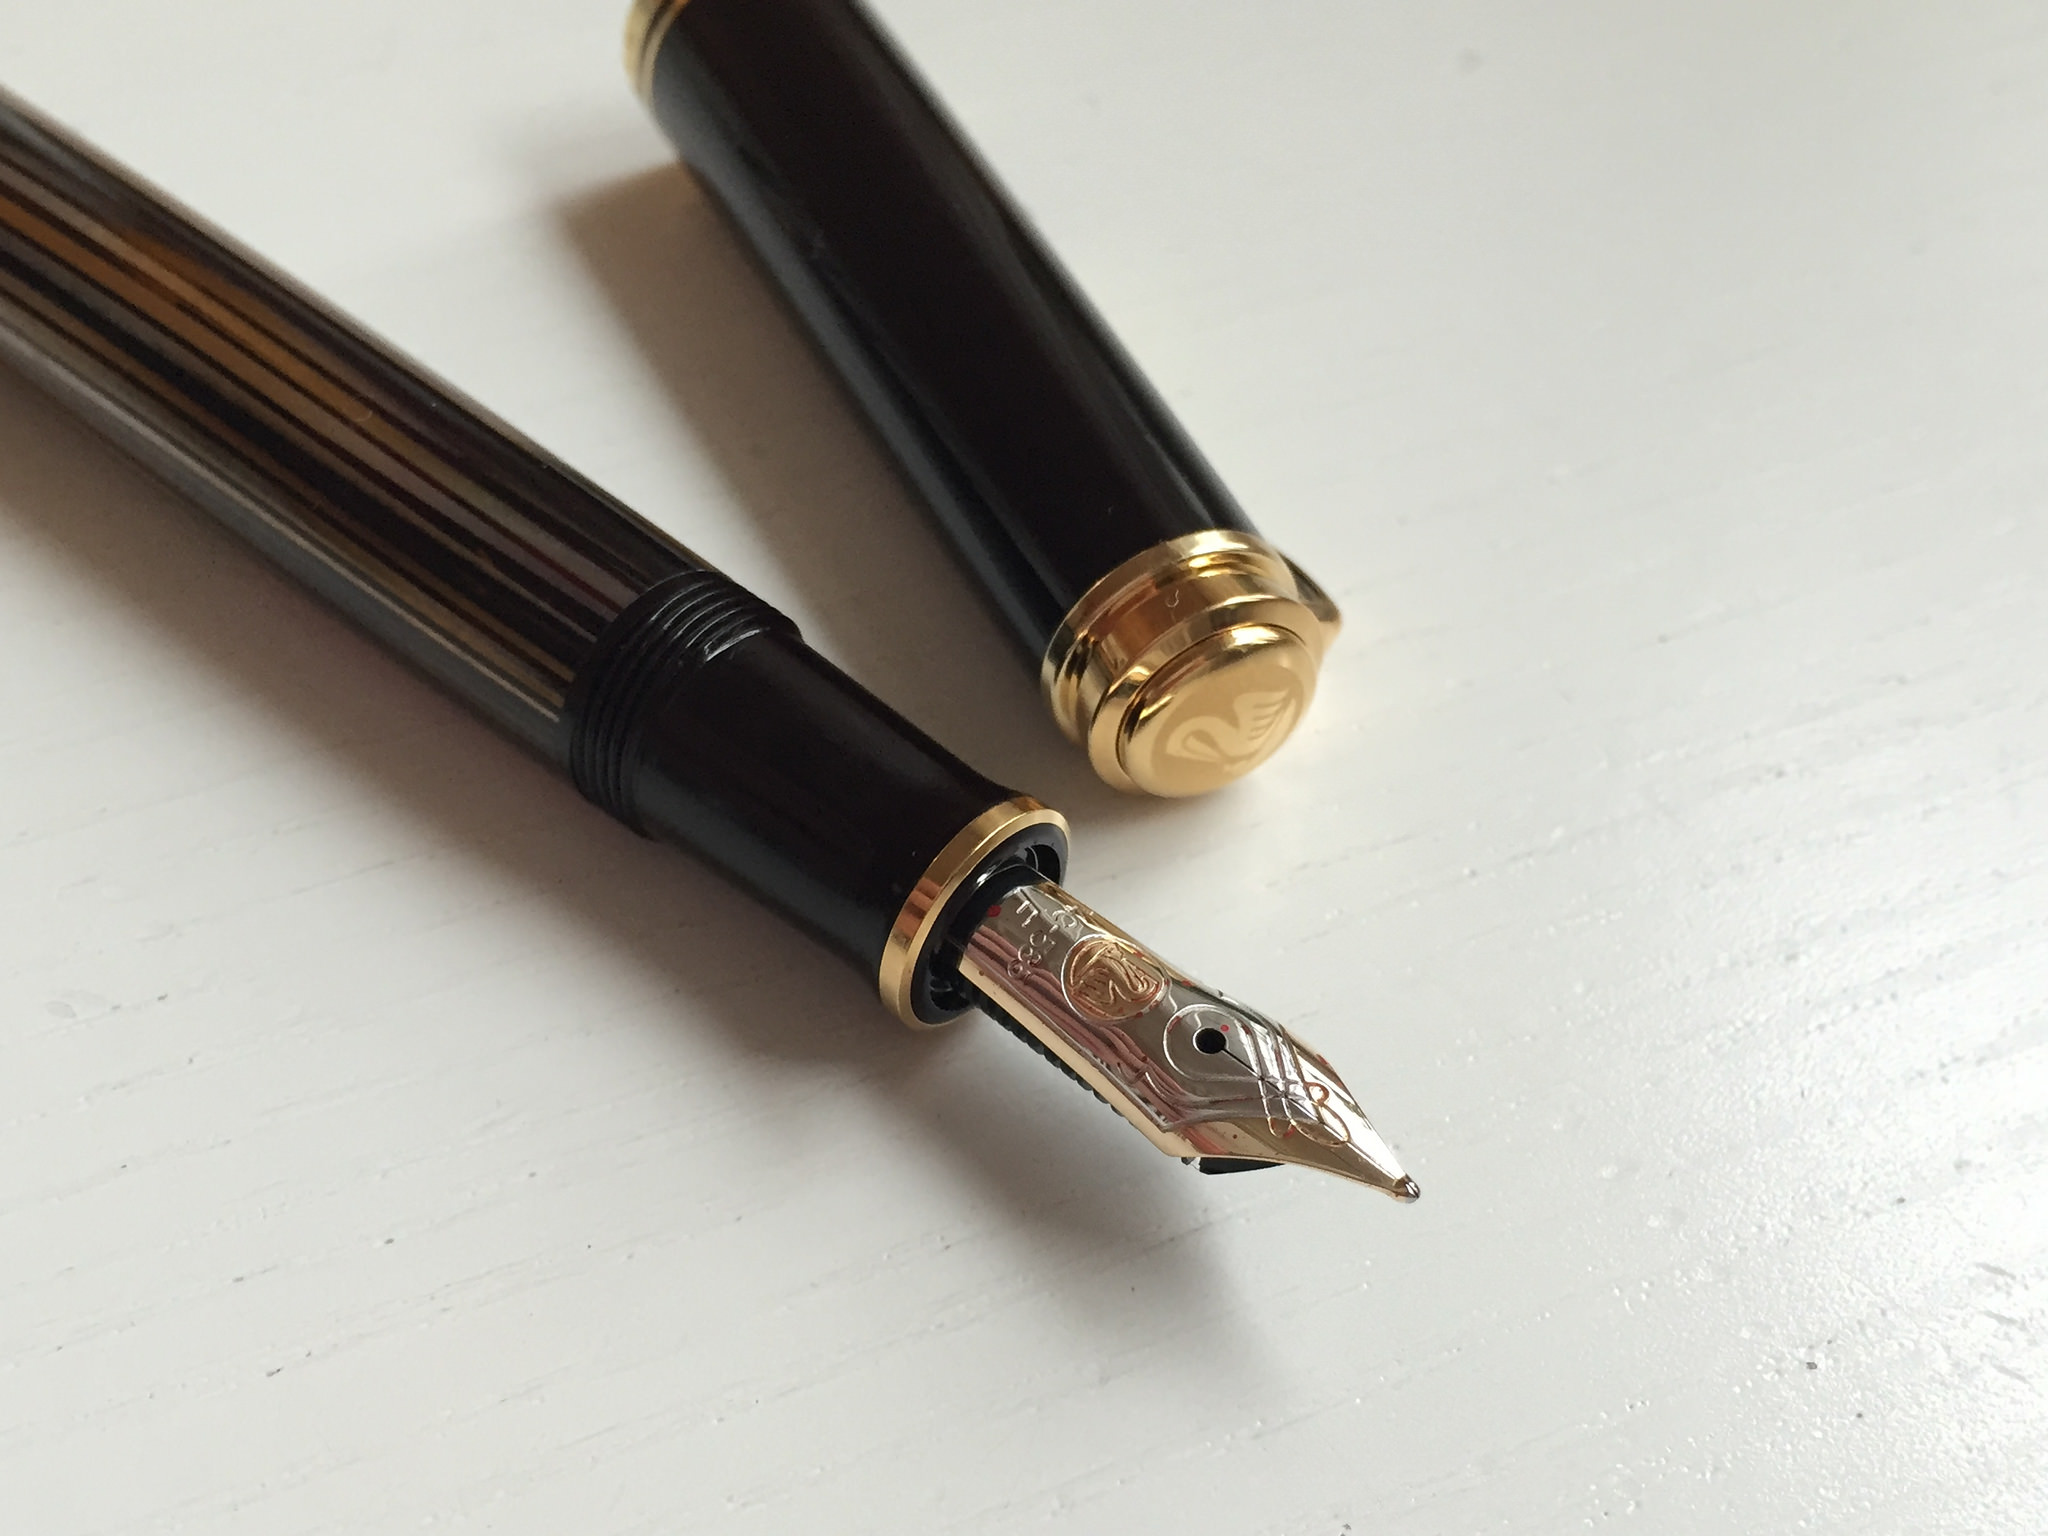 pelikan-m400-tortoiseshell-brown-2016-special-edition_1